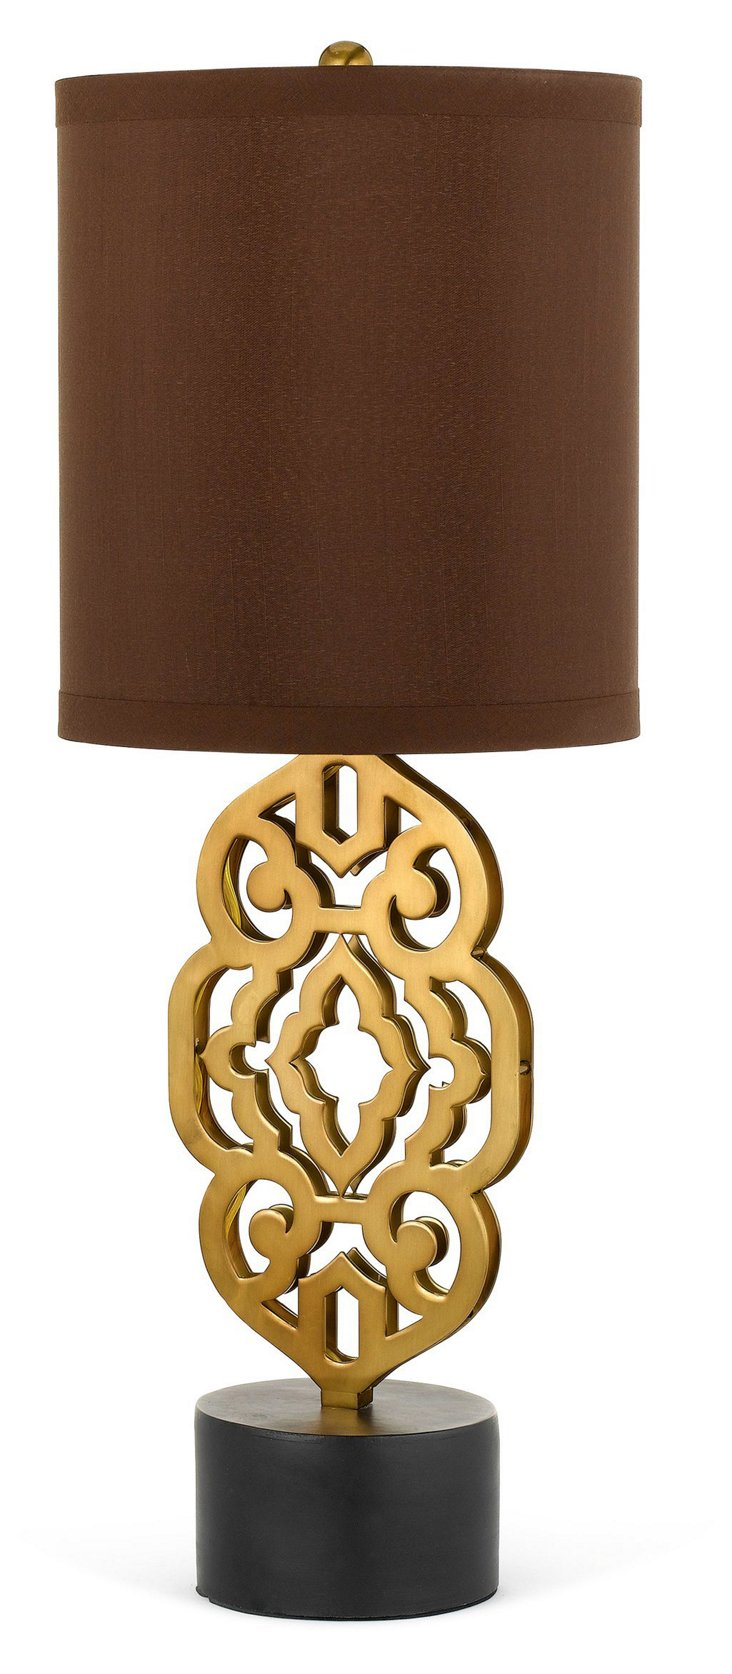 Grill Table Lamp, Antique Brass